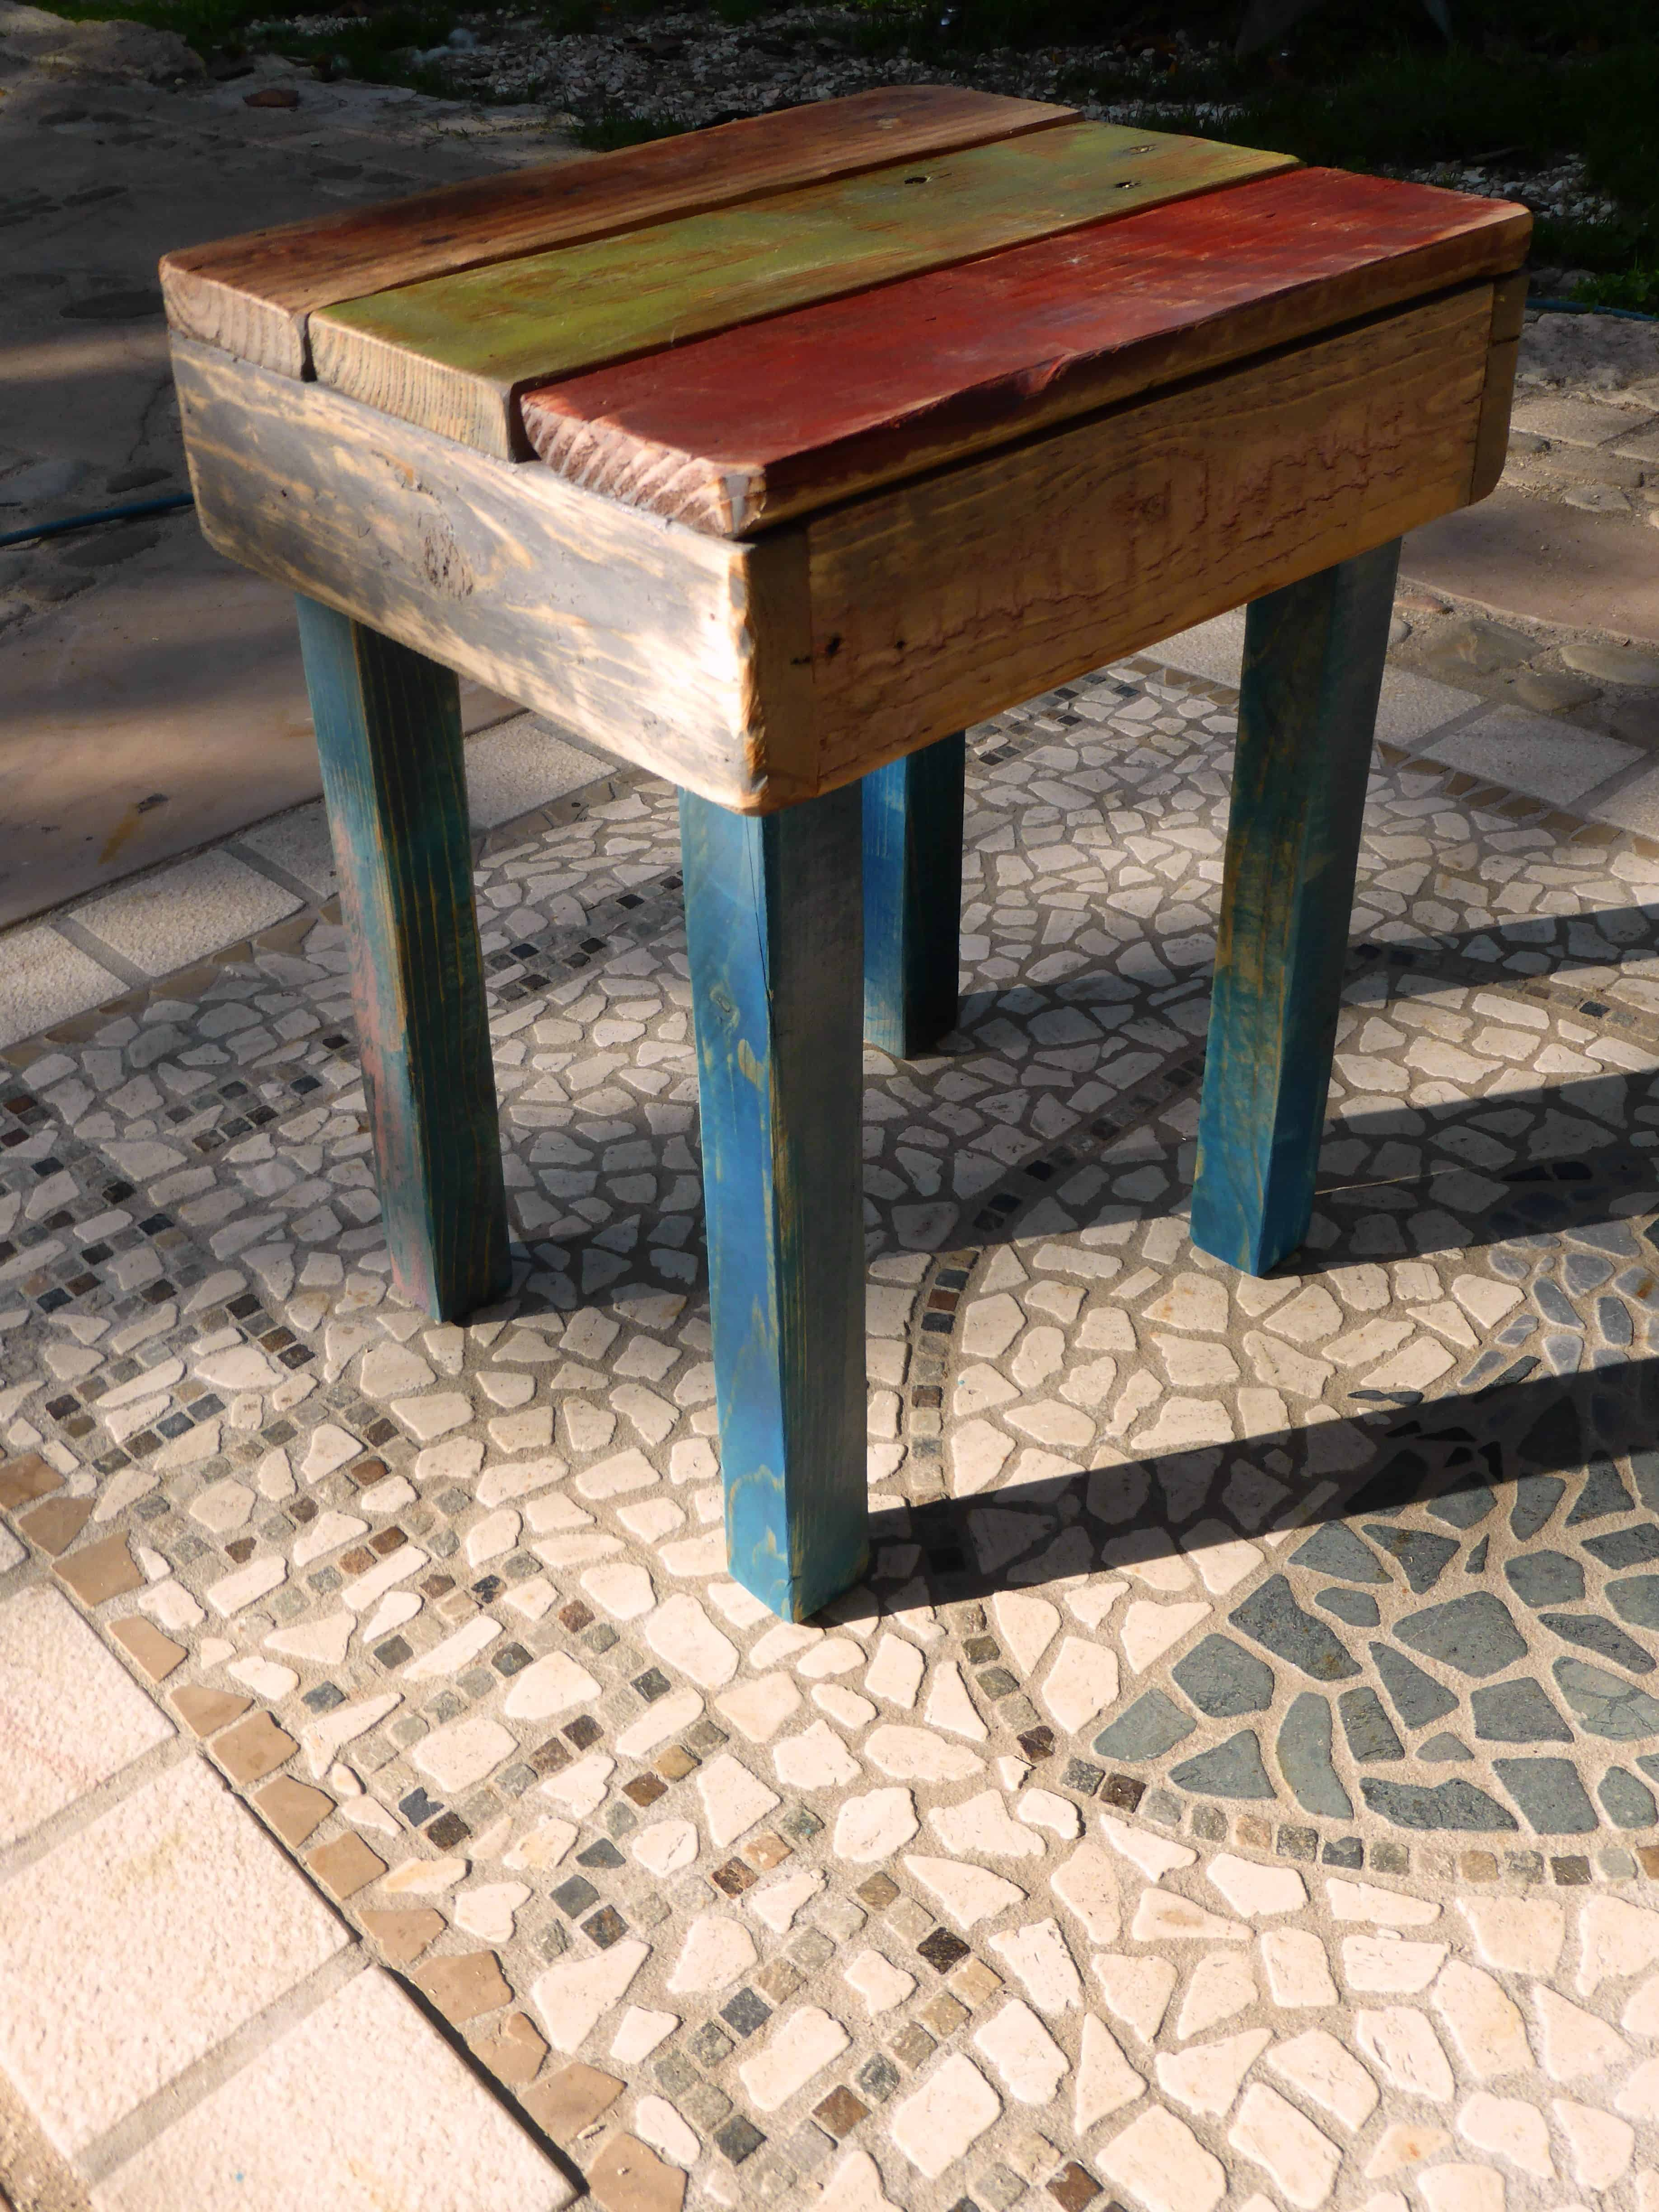 Sgabelli Con Pallet.How To Build An Easy Pallet Stool Come Costruire Uno